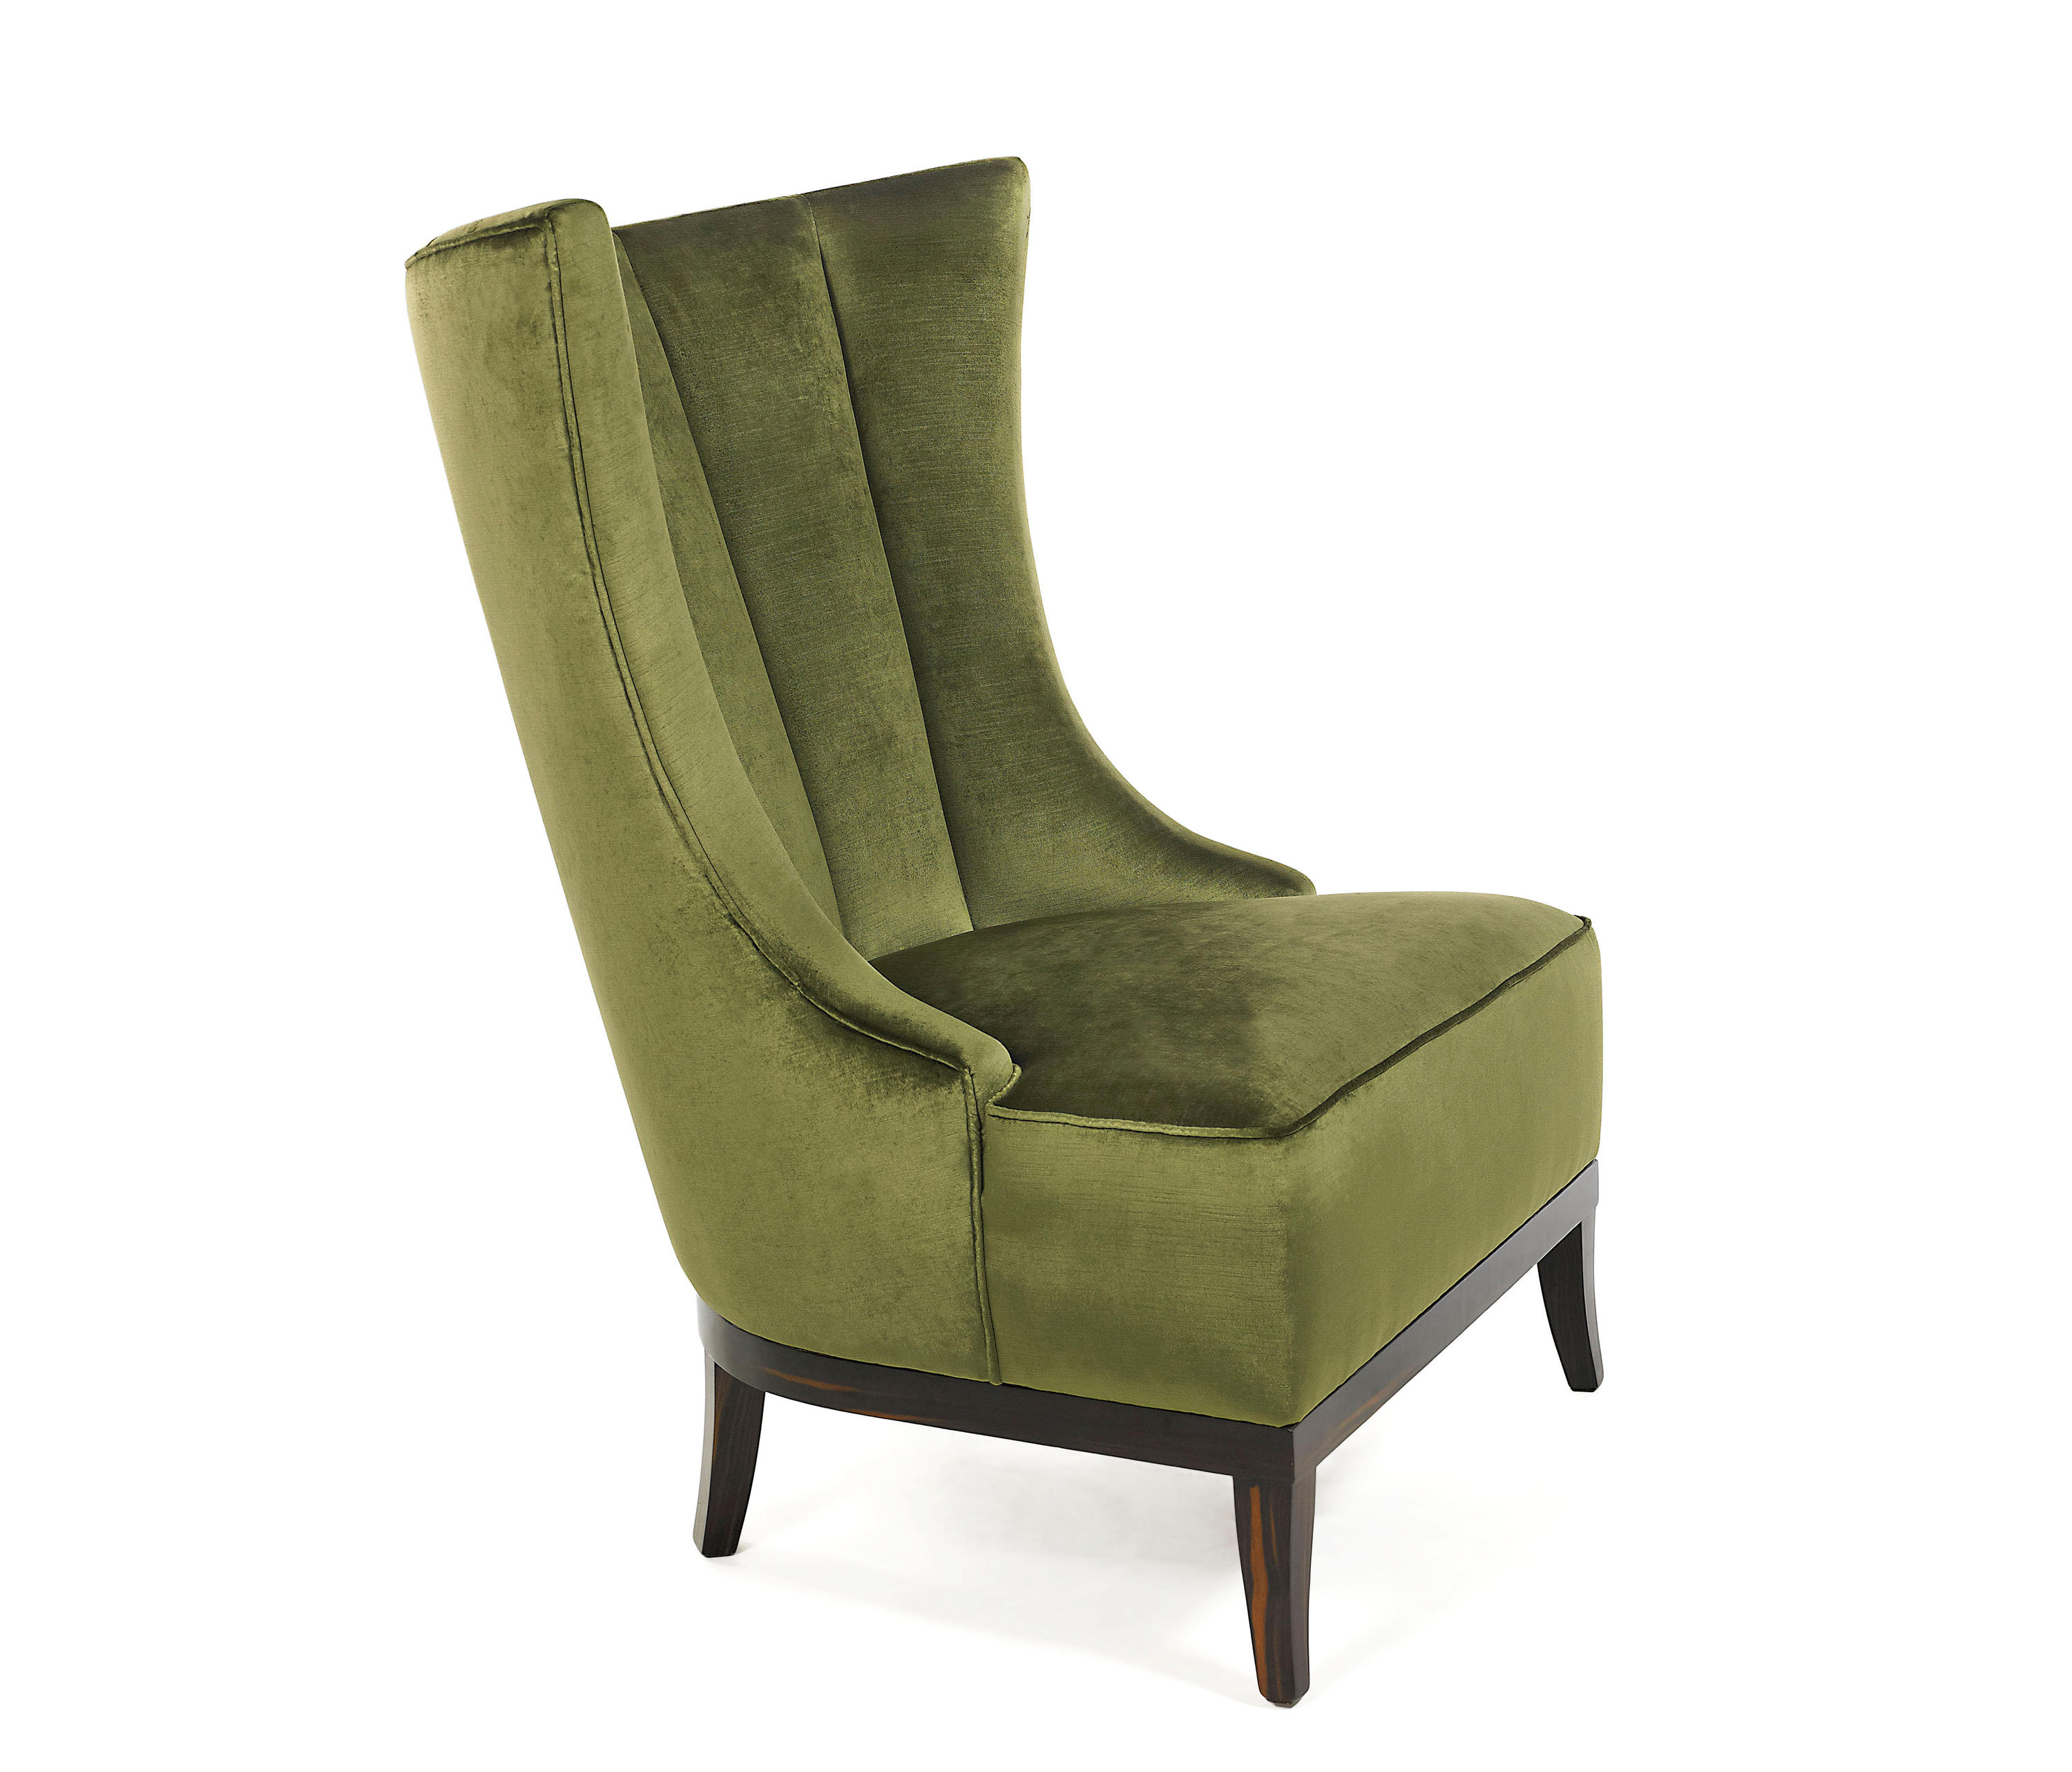 Ohrensessel moderne form  WING CHAIRS - High quality designer WING CHAIRS | Architonic